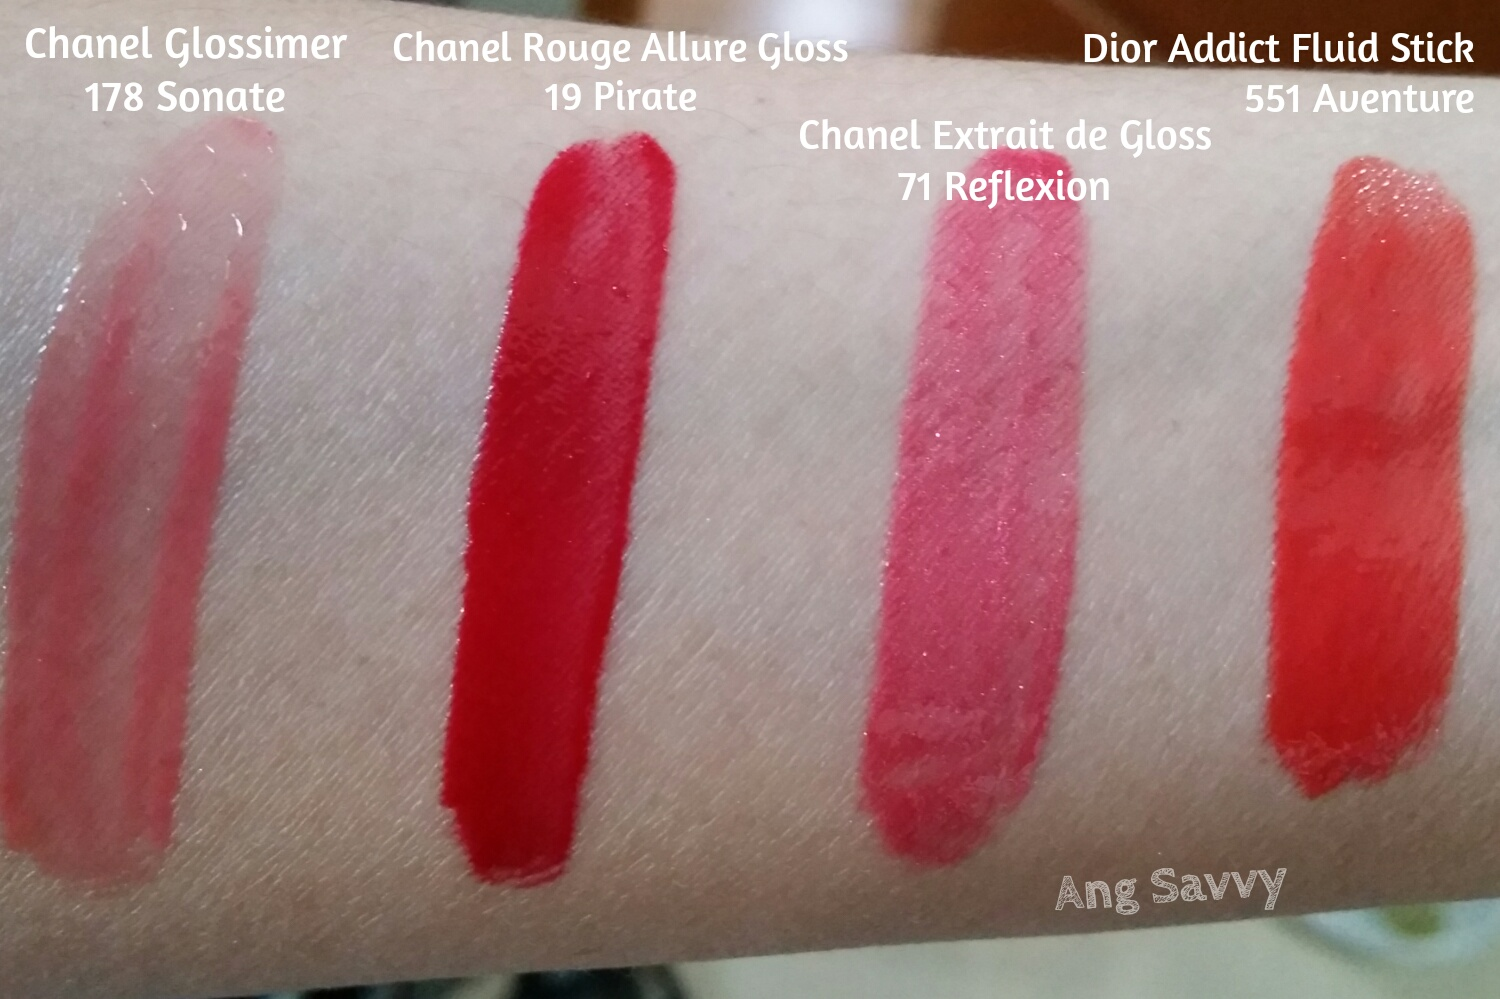 Chanel Rouge Allure Gloss 19 Pirate Swatch